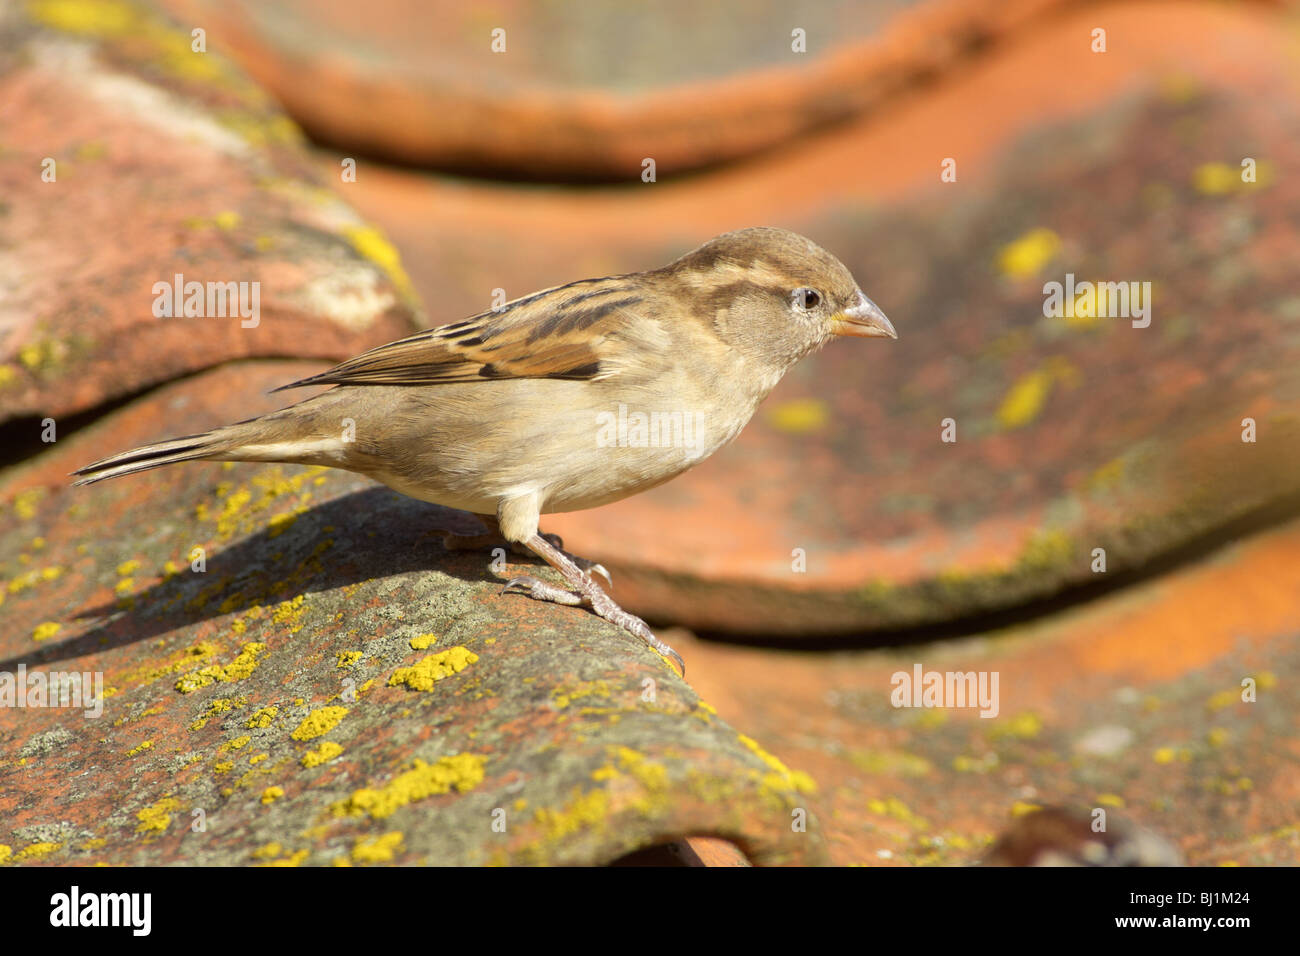 House Sparrow Uk Roof Stock Photos Amp House Sparrow Uk Roof